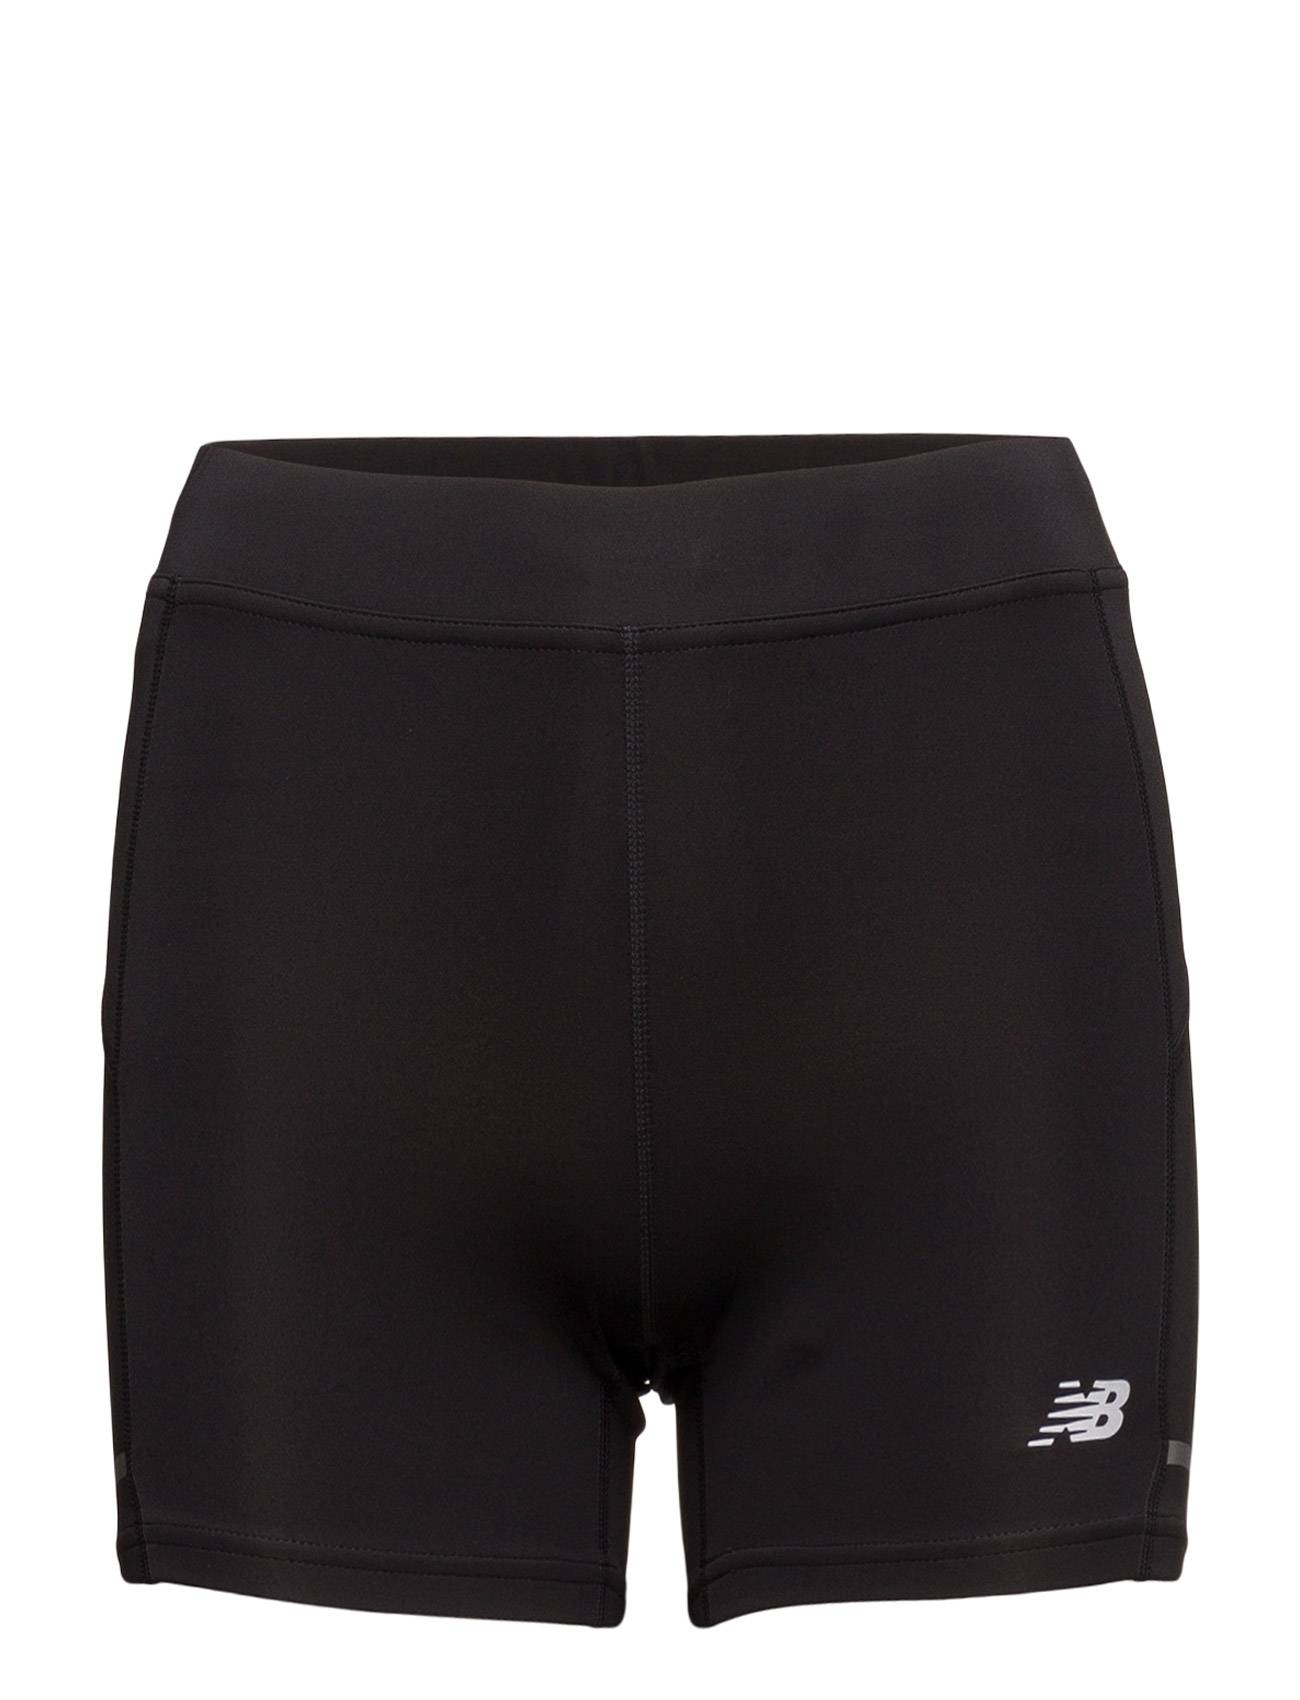 New Balance Accelerate Fitted Short